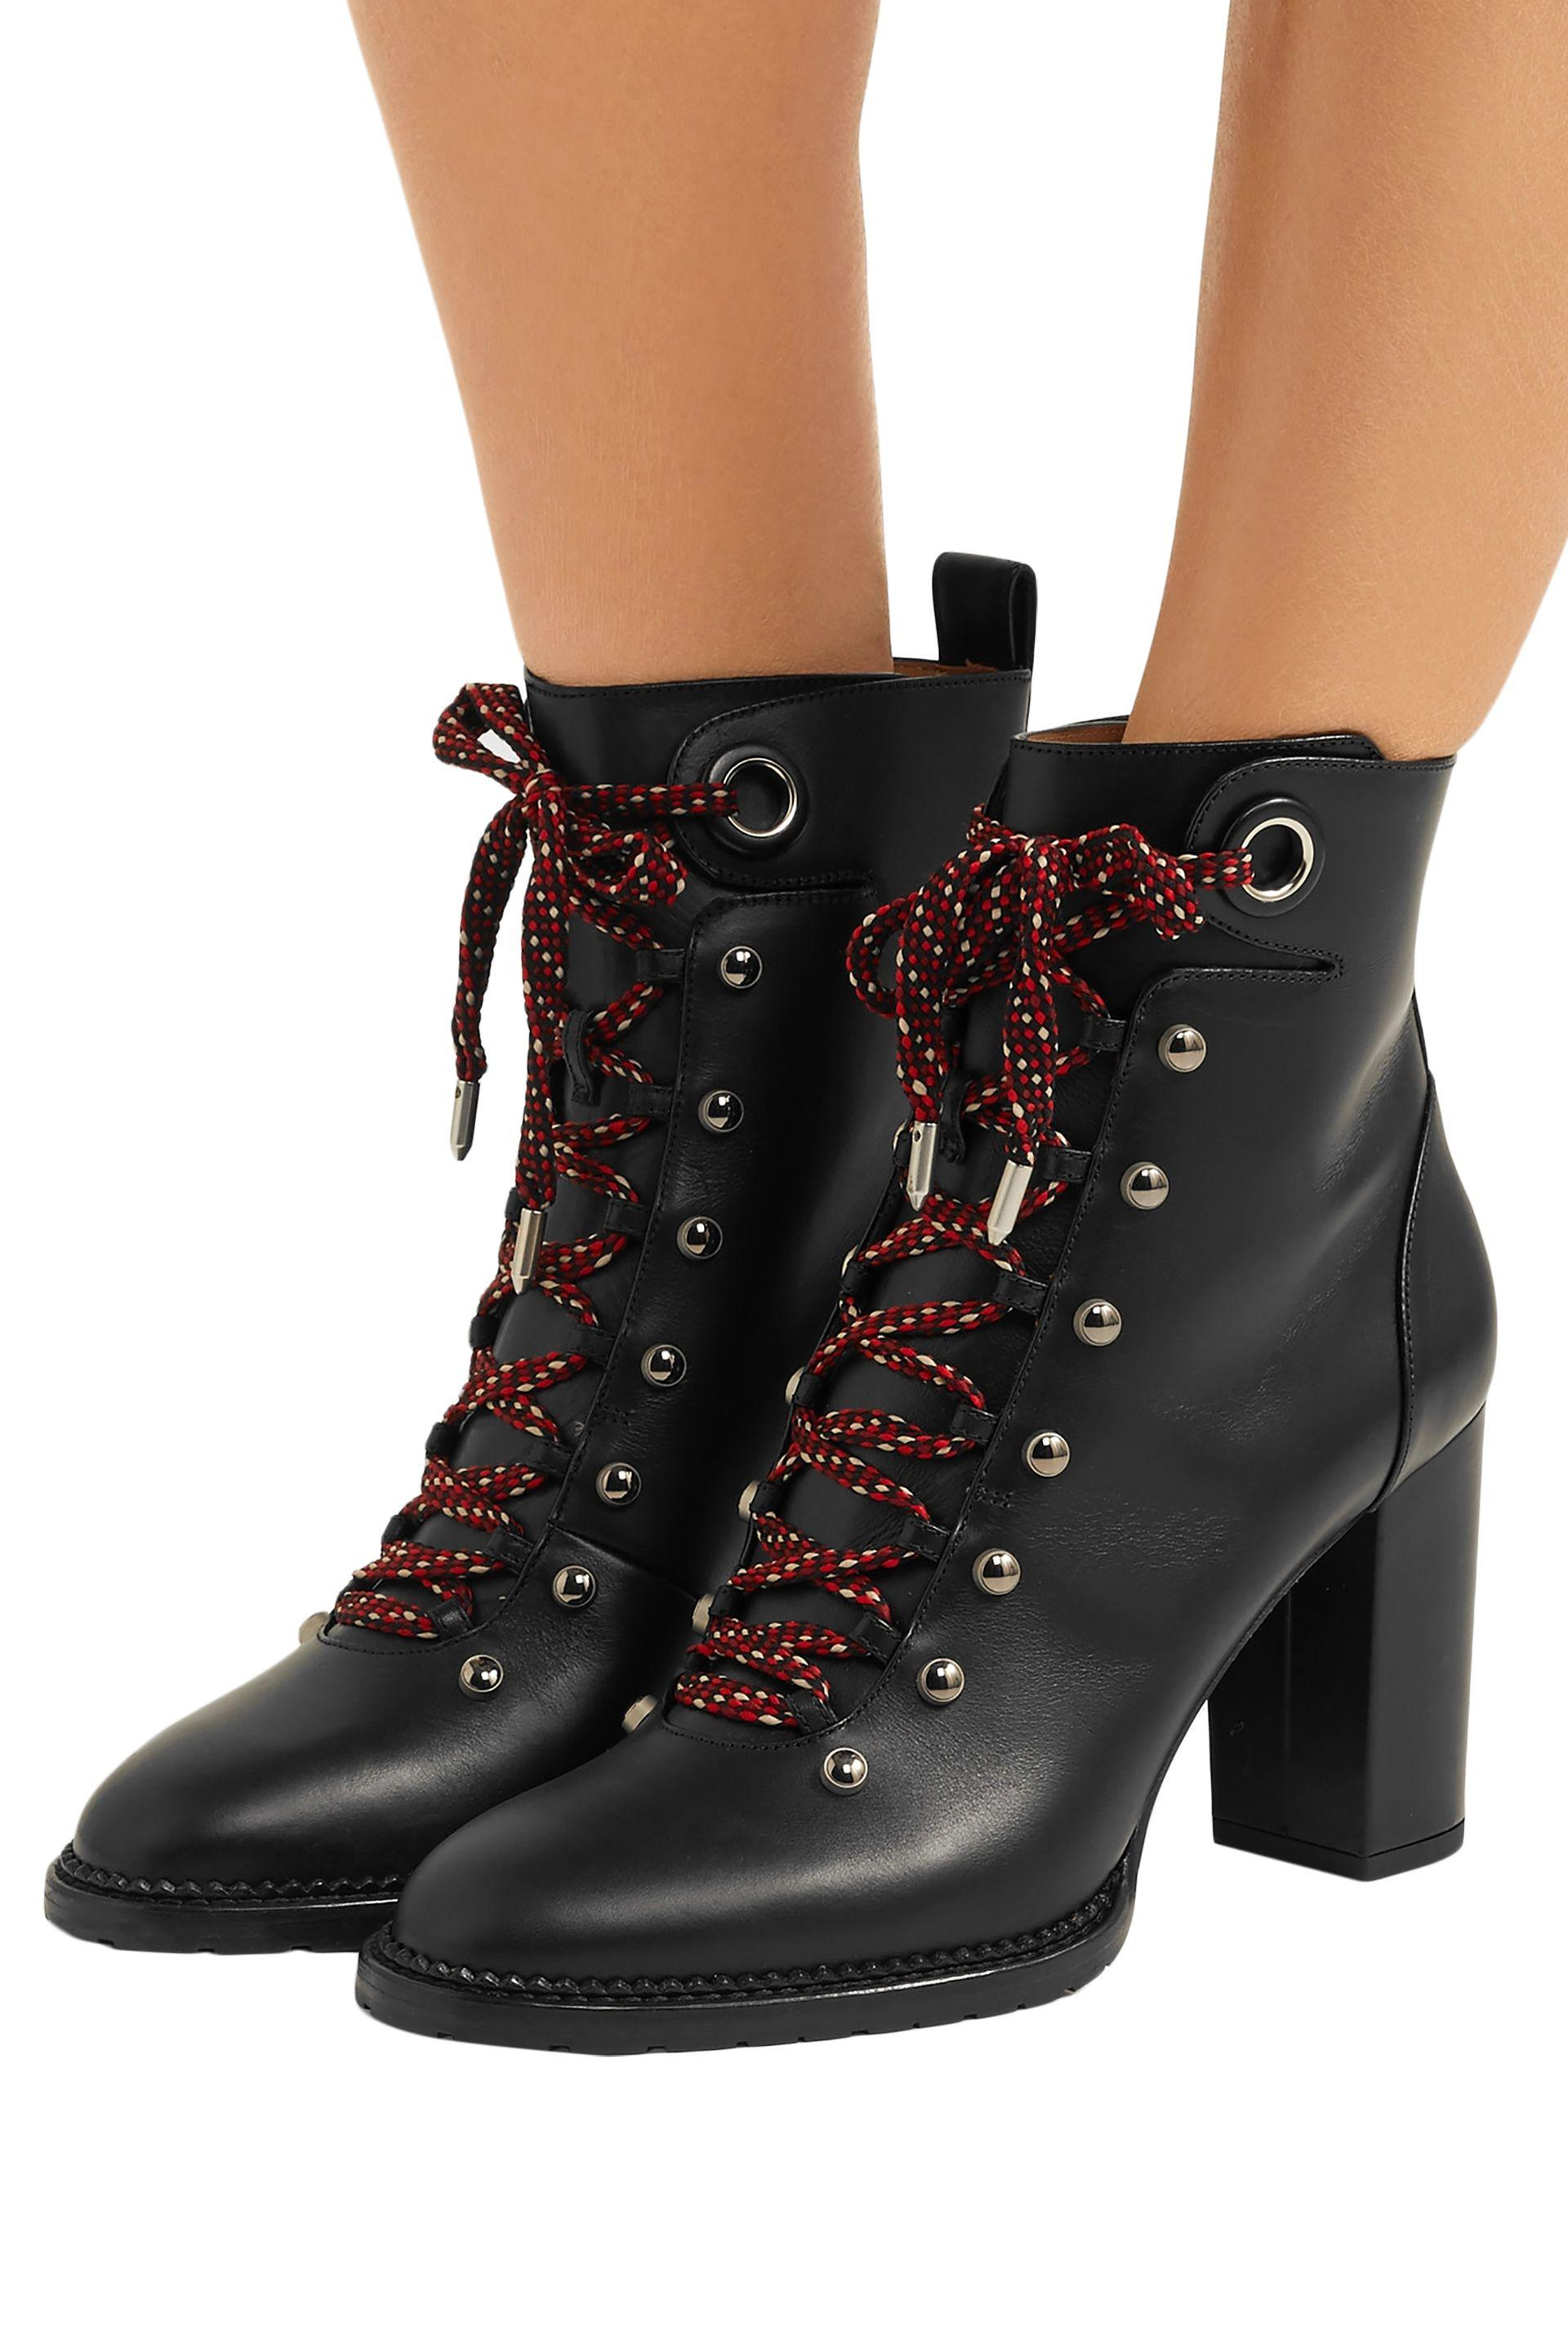 974f437660f4d Aquazzura - Woman Hiker Lace-up Studded Leather Ankle Boots Black - Lyst.  View fullscreen